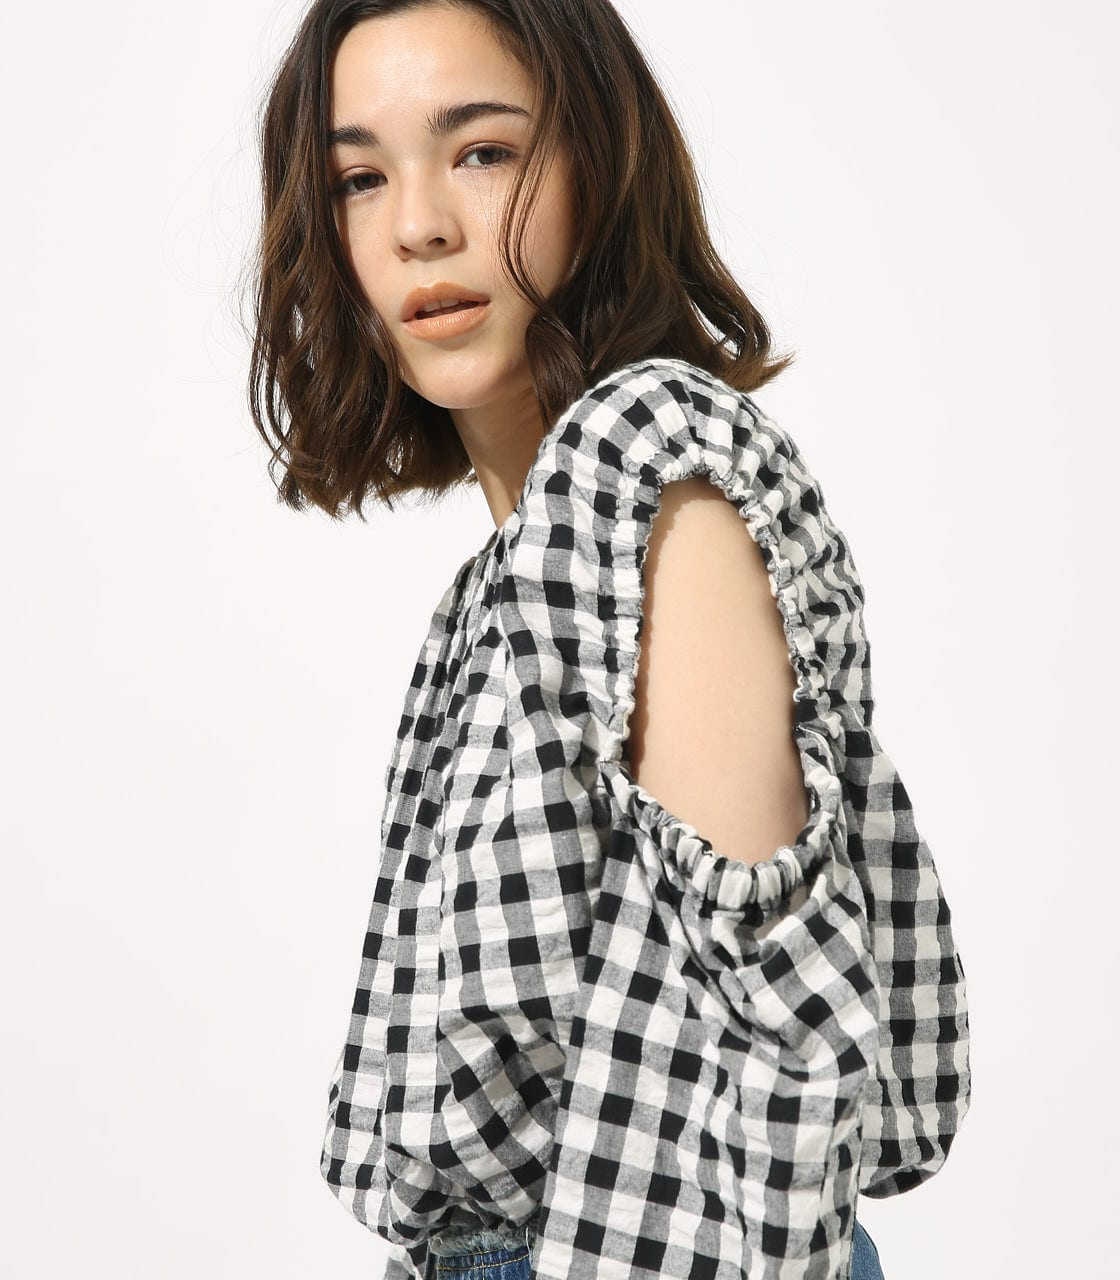 【AZUL BY MOUSSY】GINGHAM OPEN SHOULDER TOPS 【MOOK49掲載 90053】 詳細画像 柄BLK 2